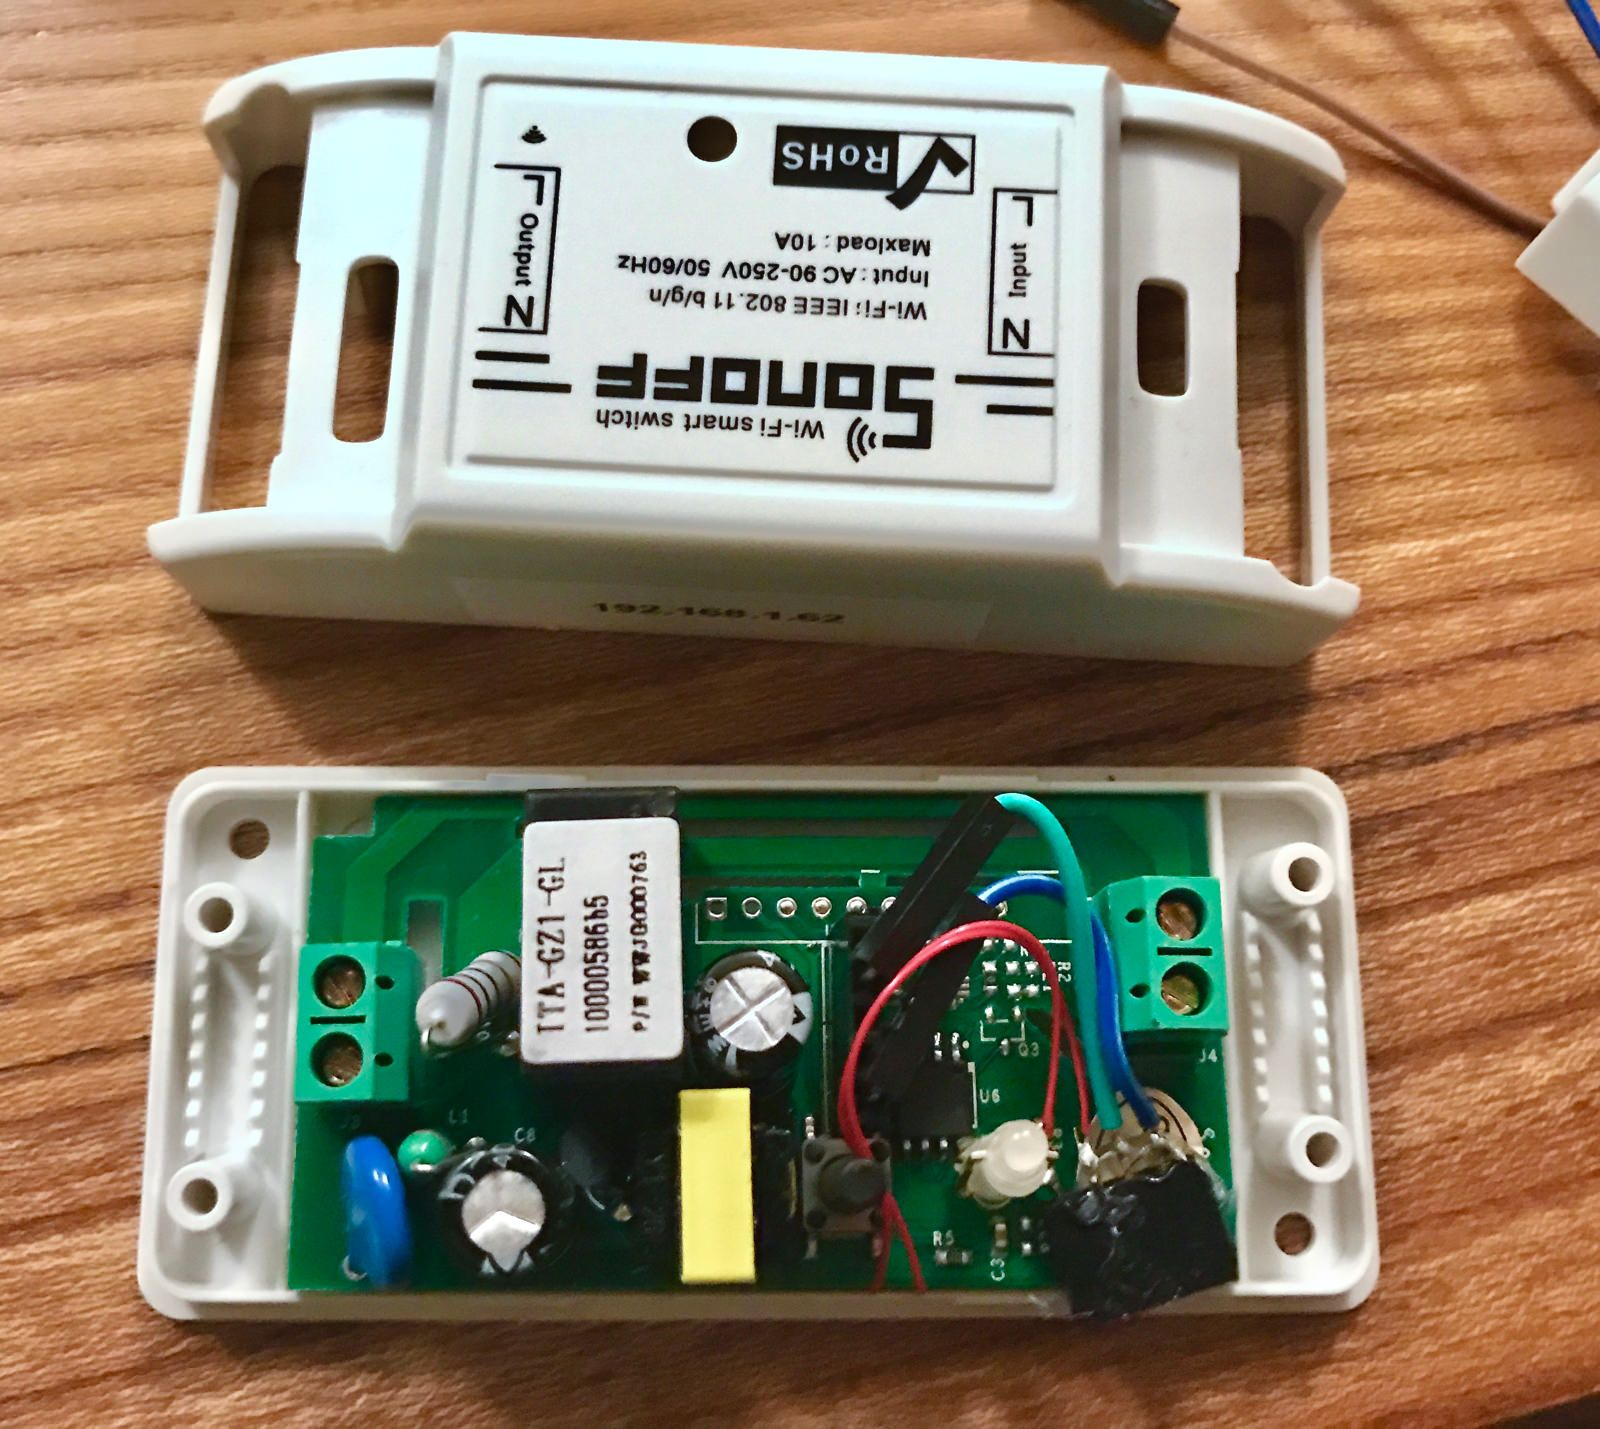 How To Add An I2c Interface To A Sonoff Wifi Smart Switch The Sonoff Brand Is A Whole Series Os Iot Devic Smart Switches Electronics Projects Diy Wifi Gadgets